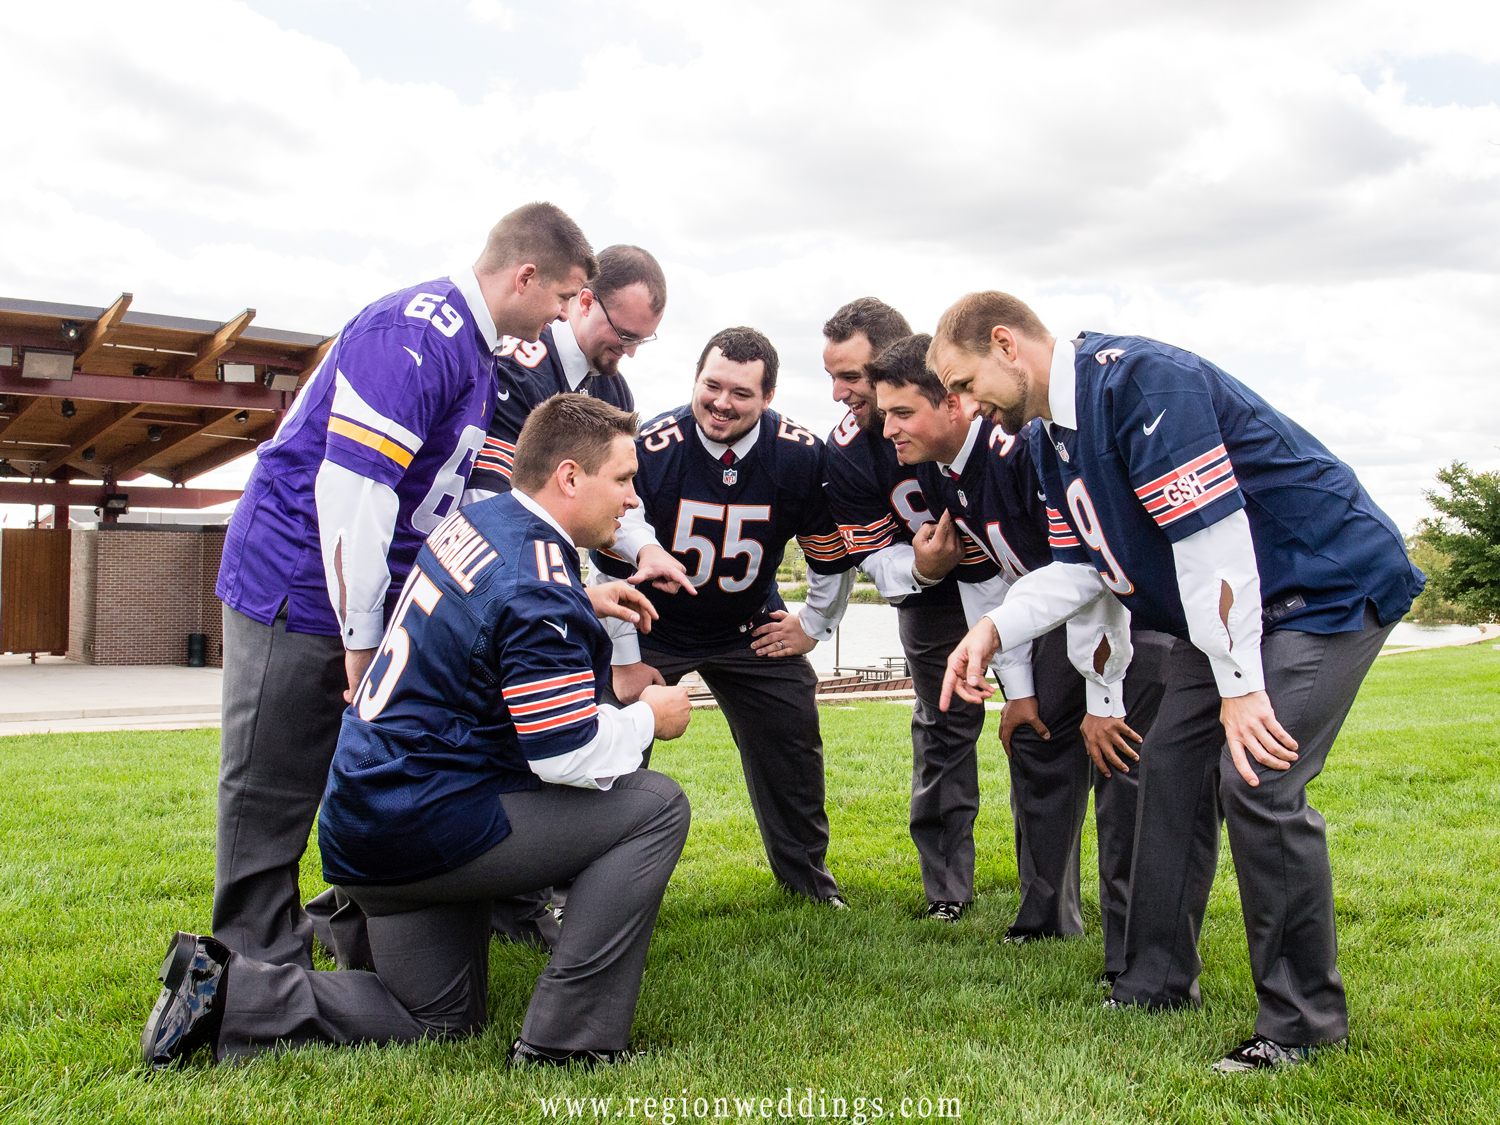 The groom instructs his groomsmen in a football huddle.